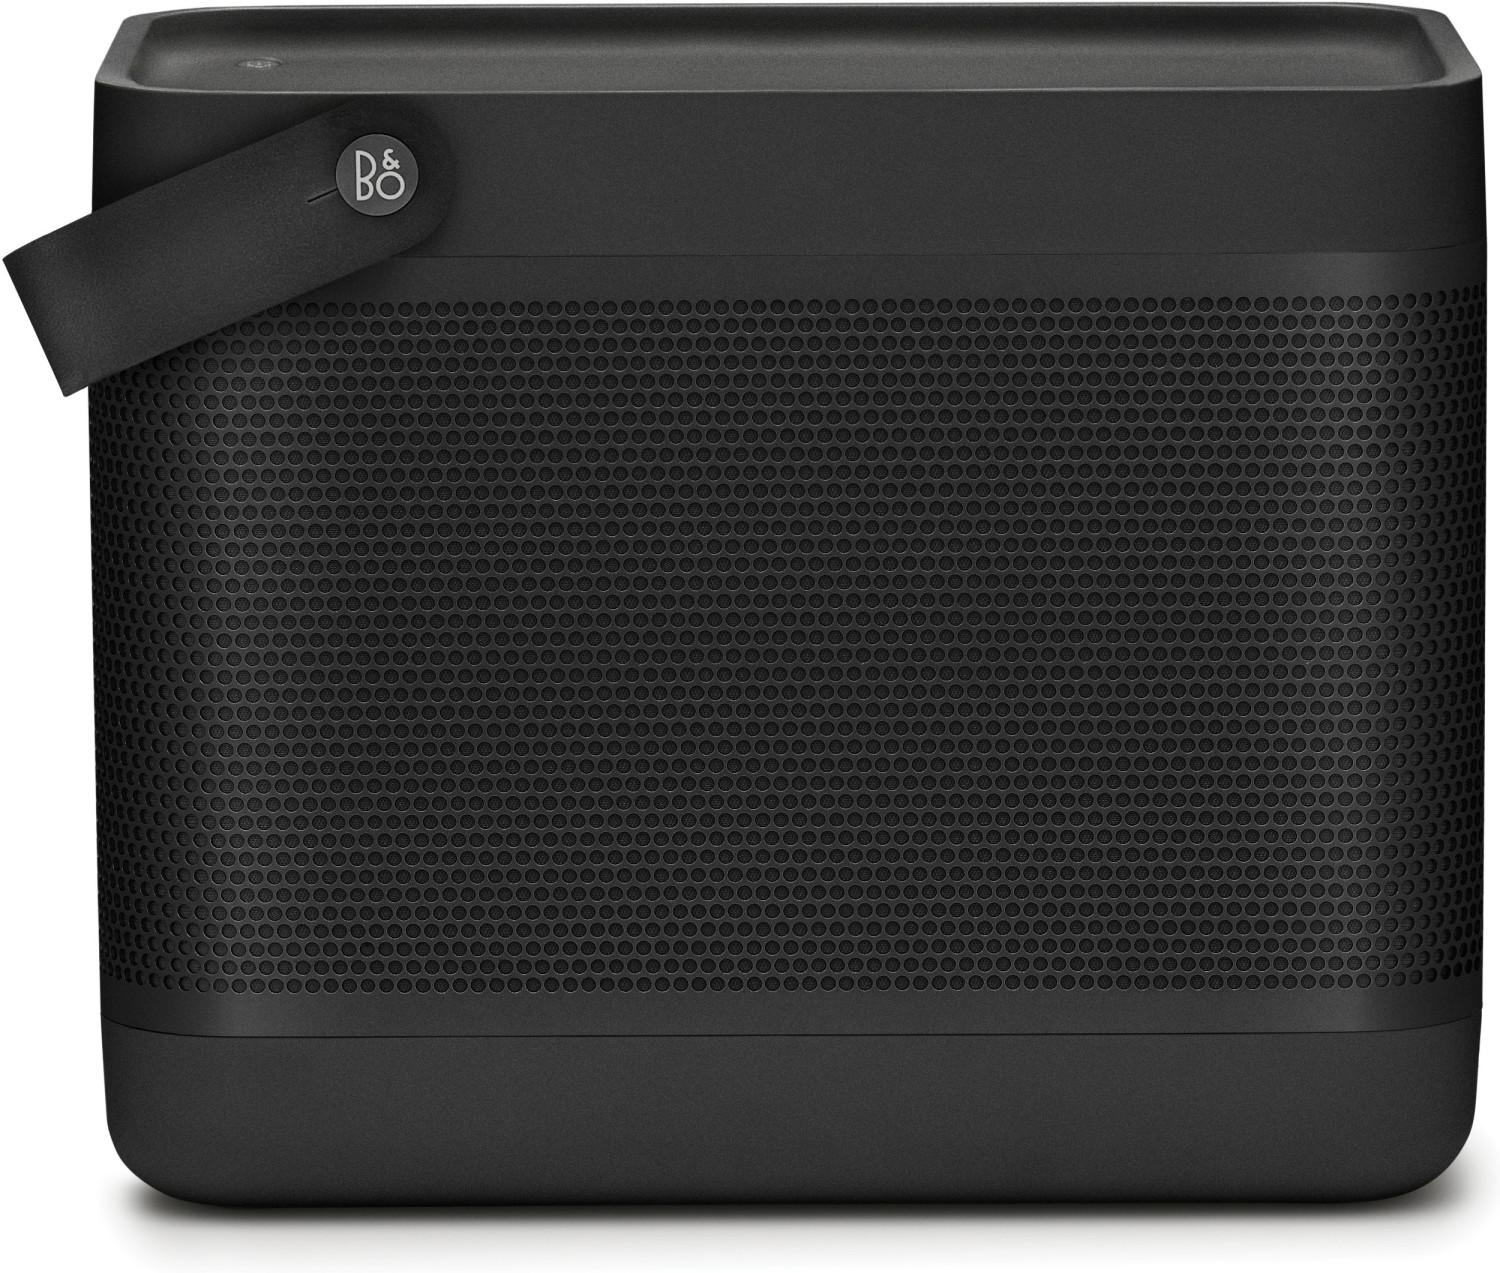 Image of Bang & Olufsen BeoLit 15 black